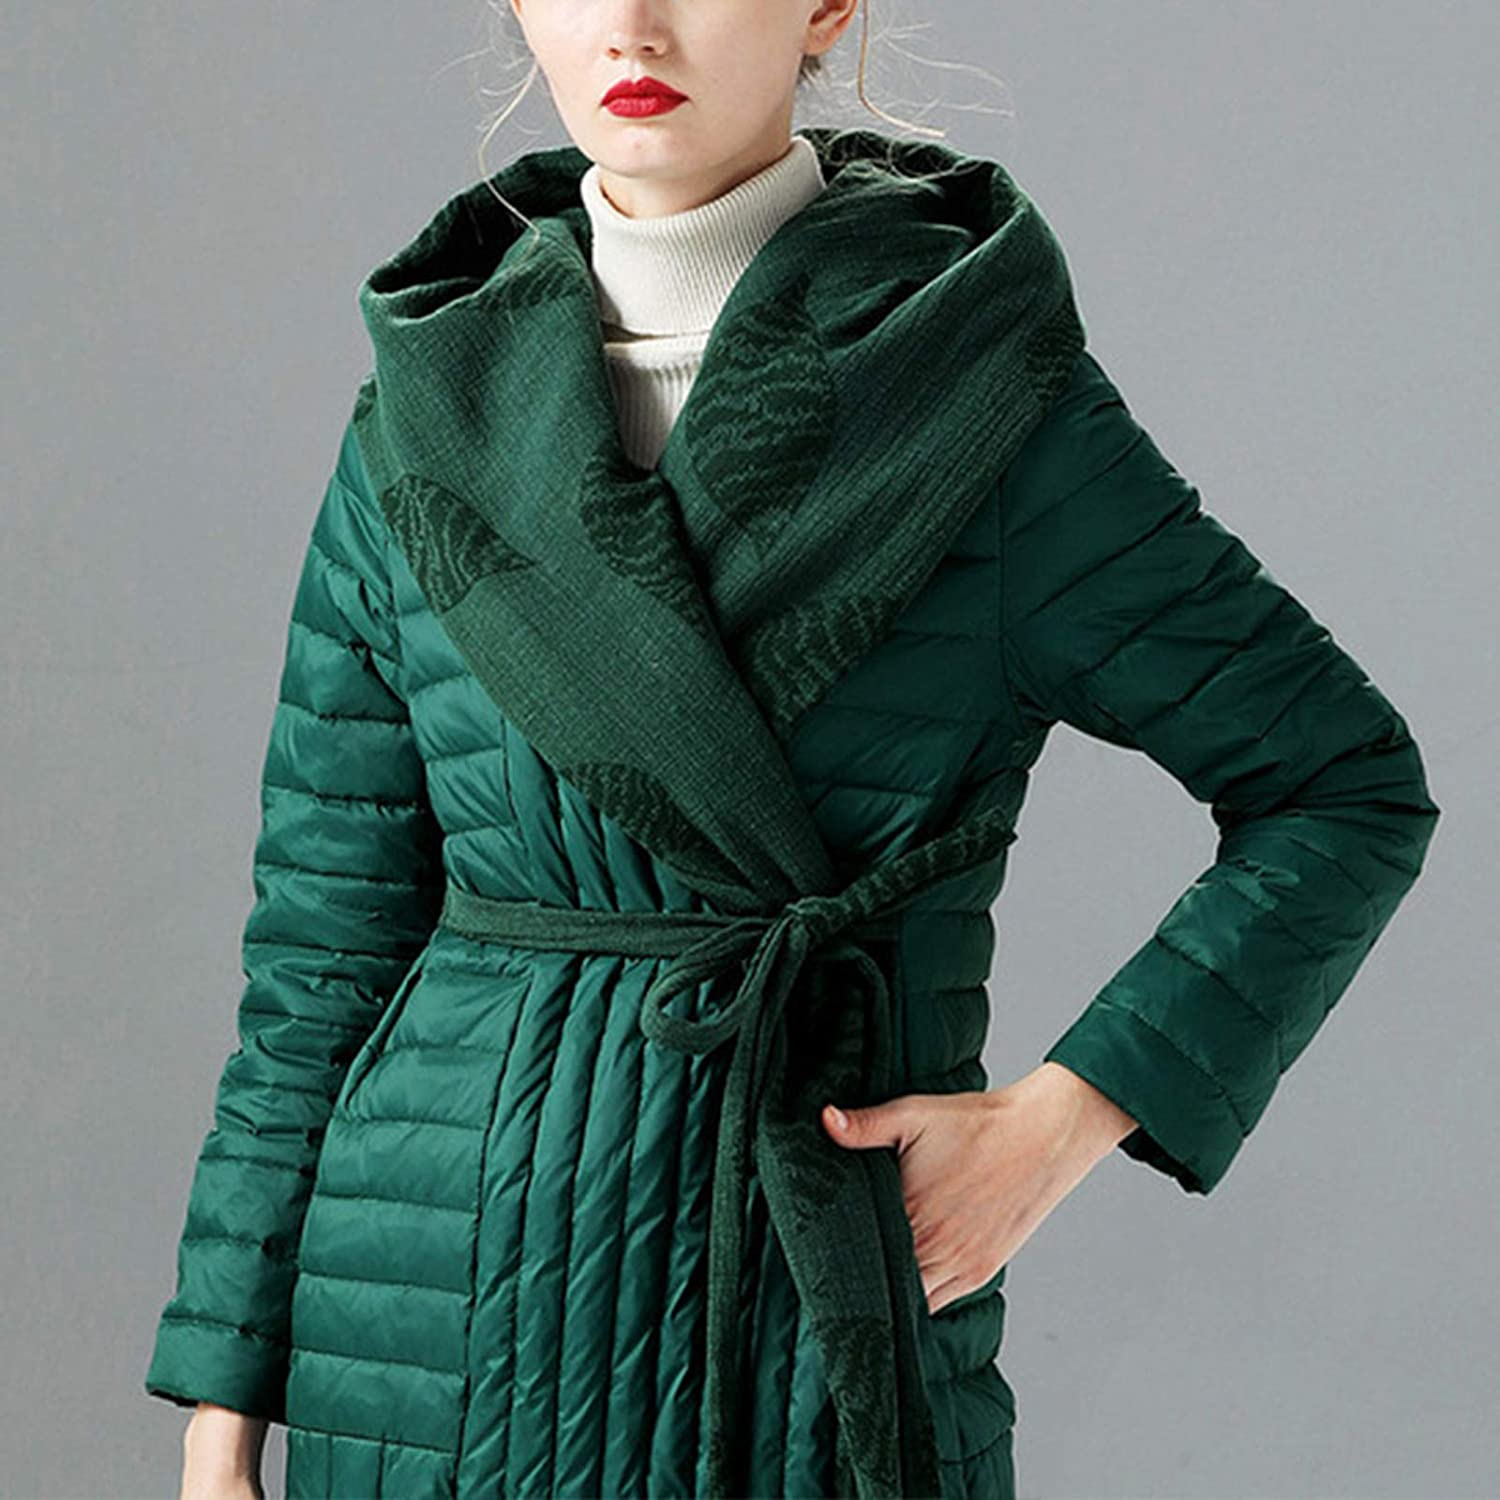 HANMAX Damen Ultraleicht Daunenjacke Winterjacke Stepp Mantel lang Winter Warm Daunenmantel Green1